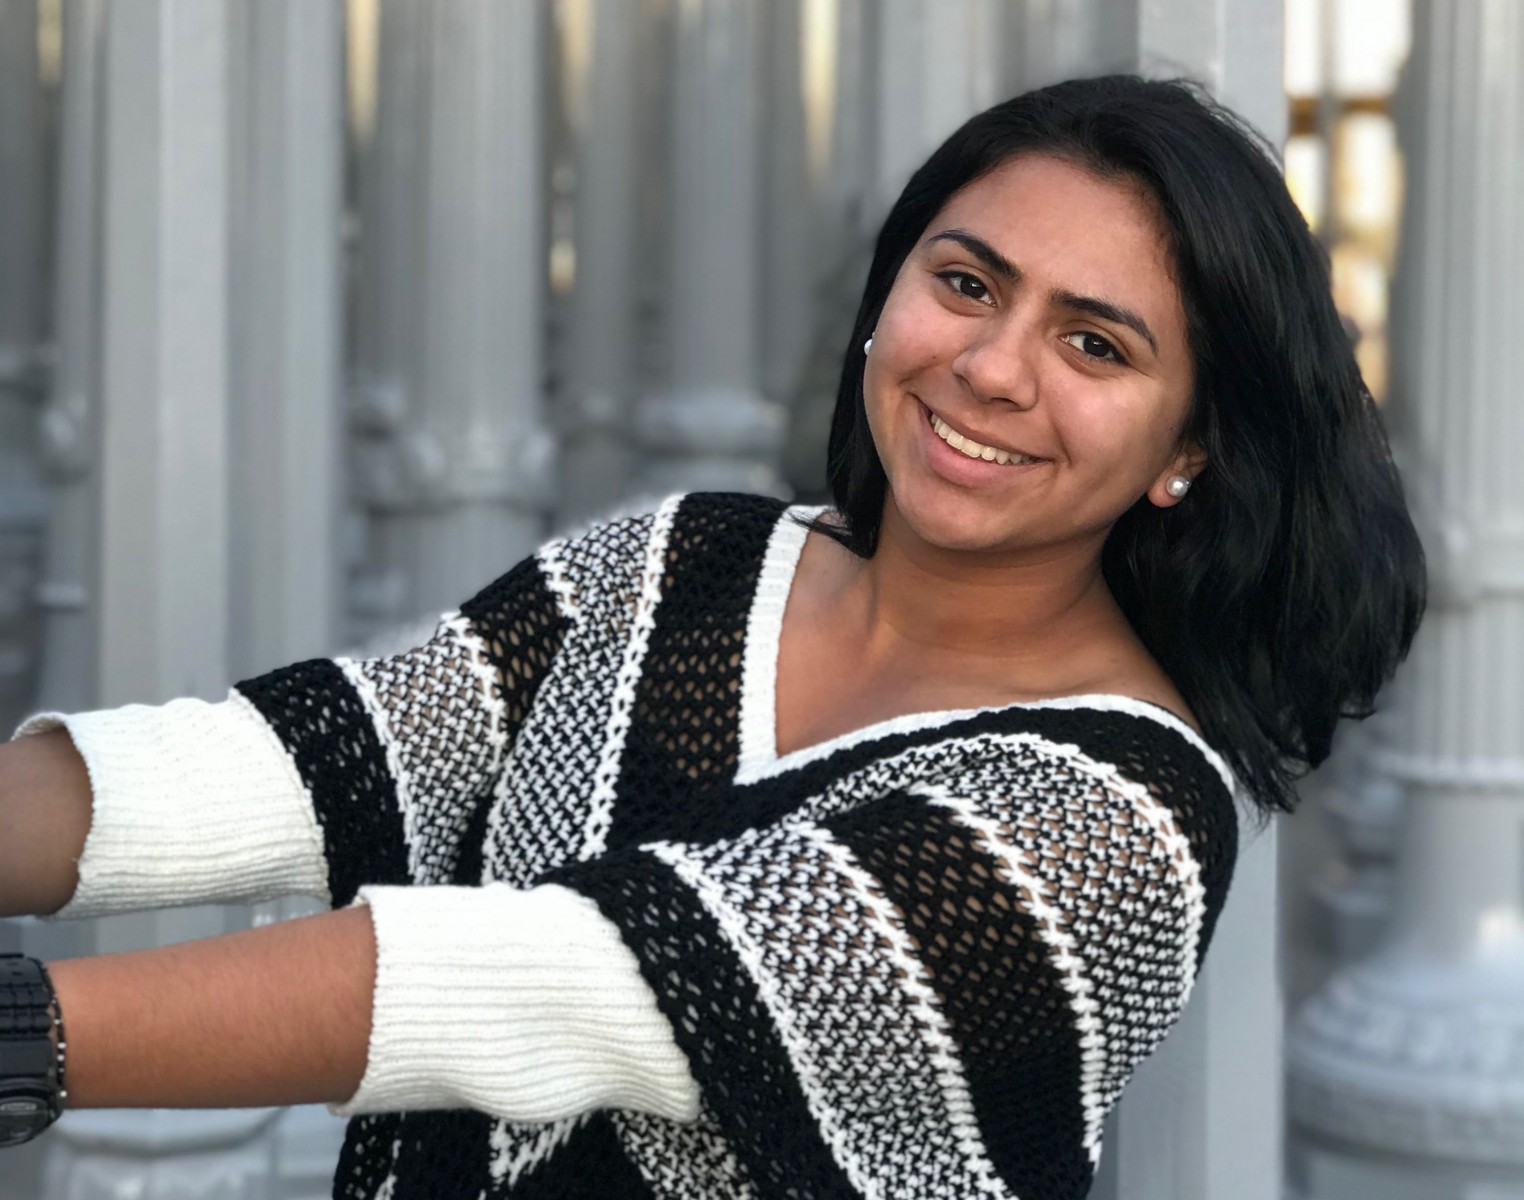 Kathleen Parra will graduate from CSUSM with a bachelor's in arts, media and design in spring 2021.